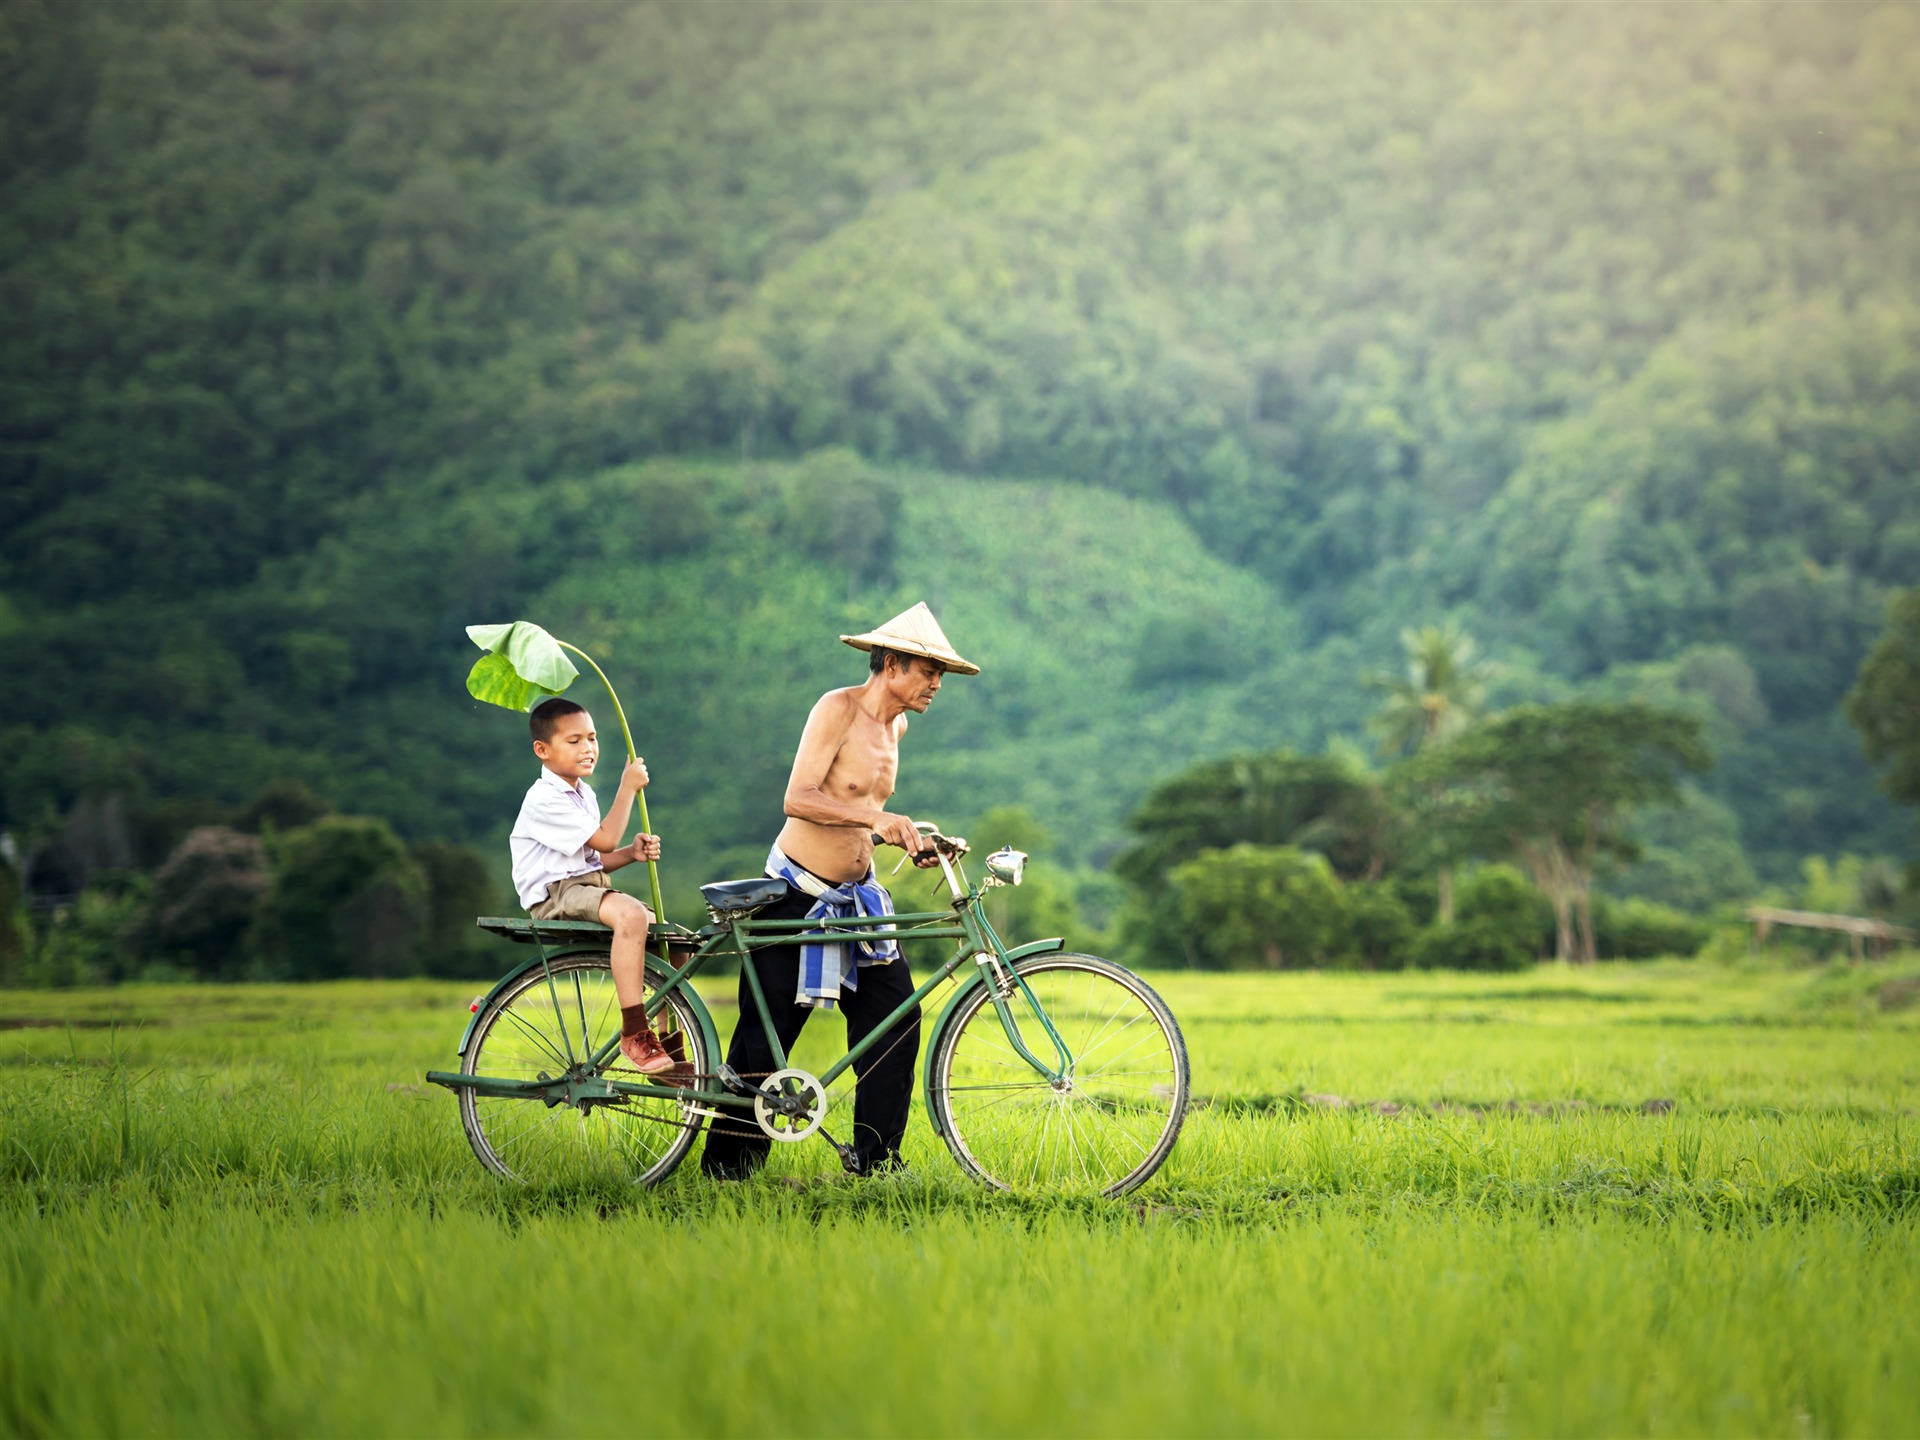 Summer Fathers Day Jungle Field Sunny Bike - 1920x1440 wallpaper download